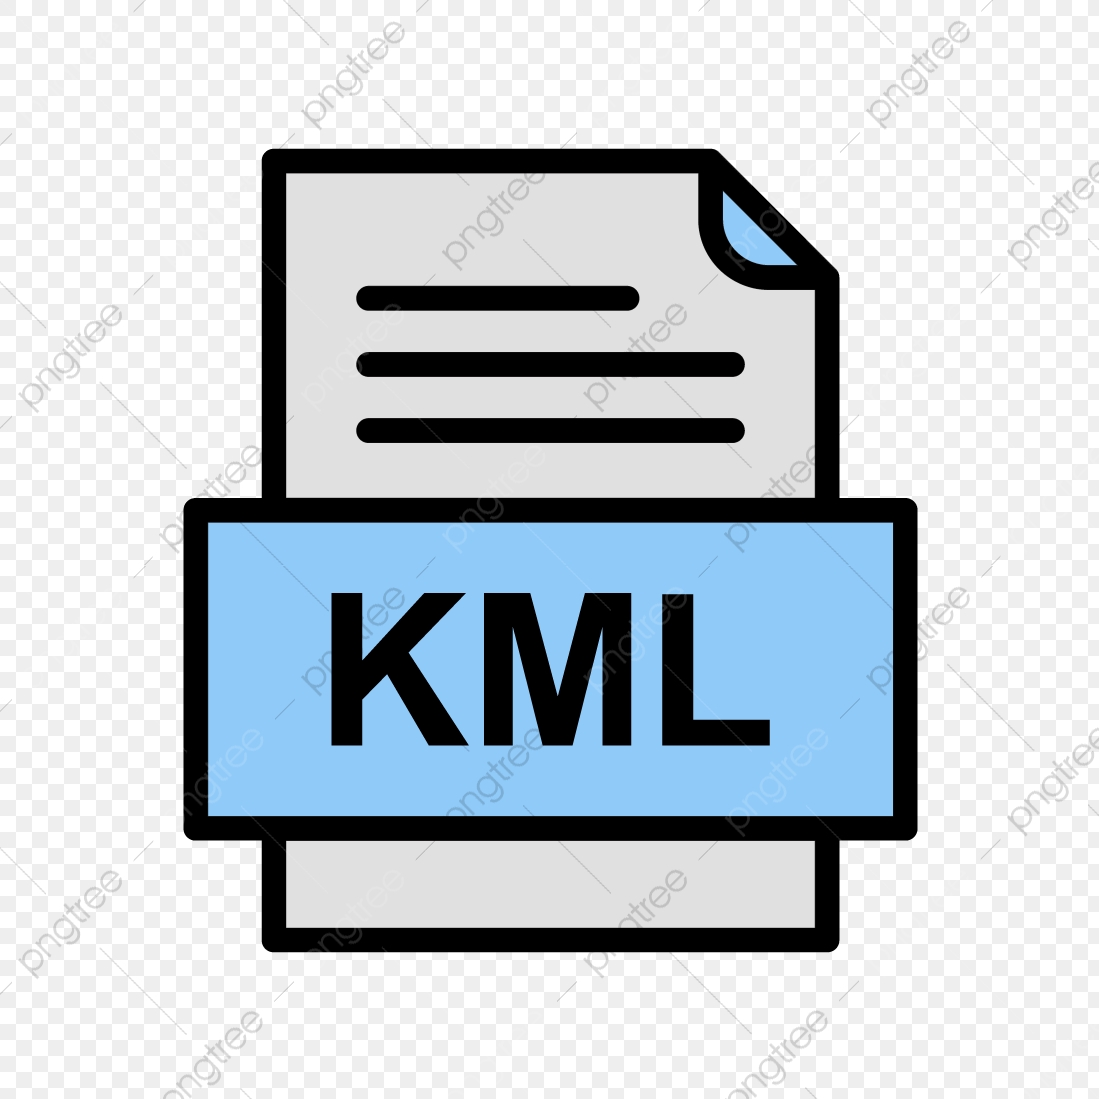 Kml File Document Icon, Kml, Document, File PNG and Vector